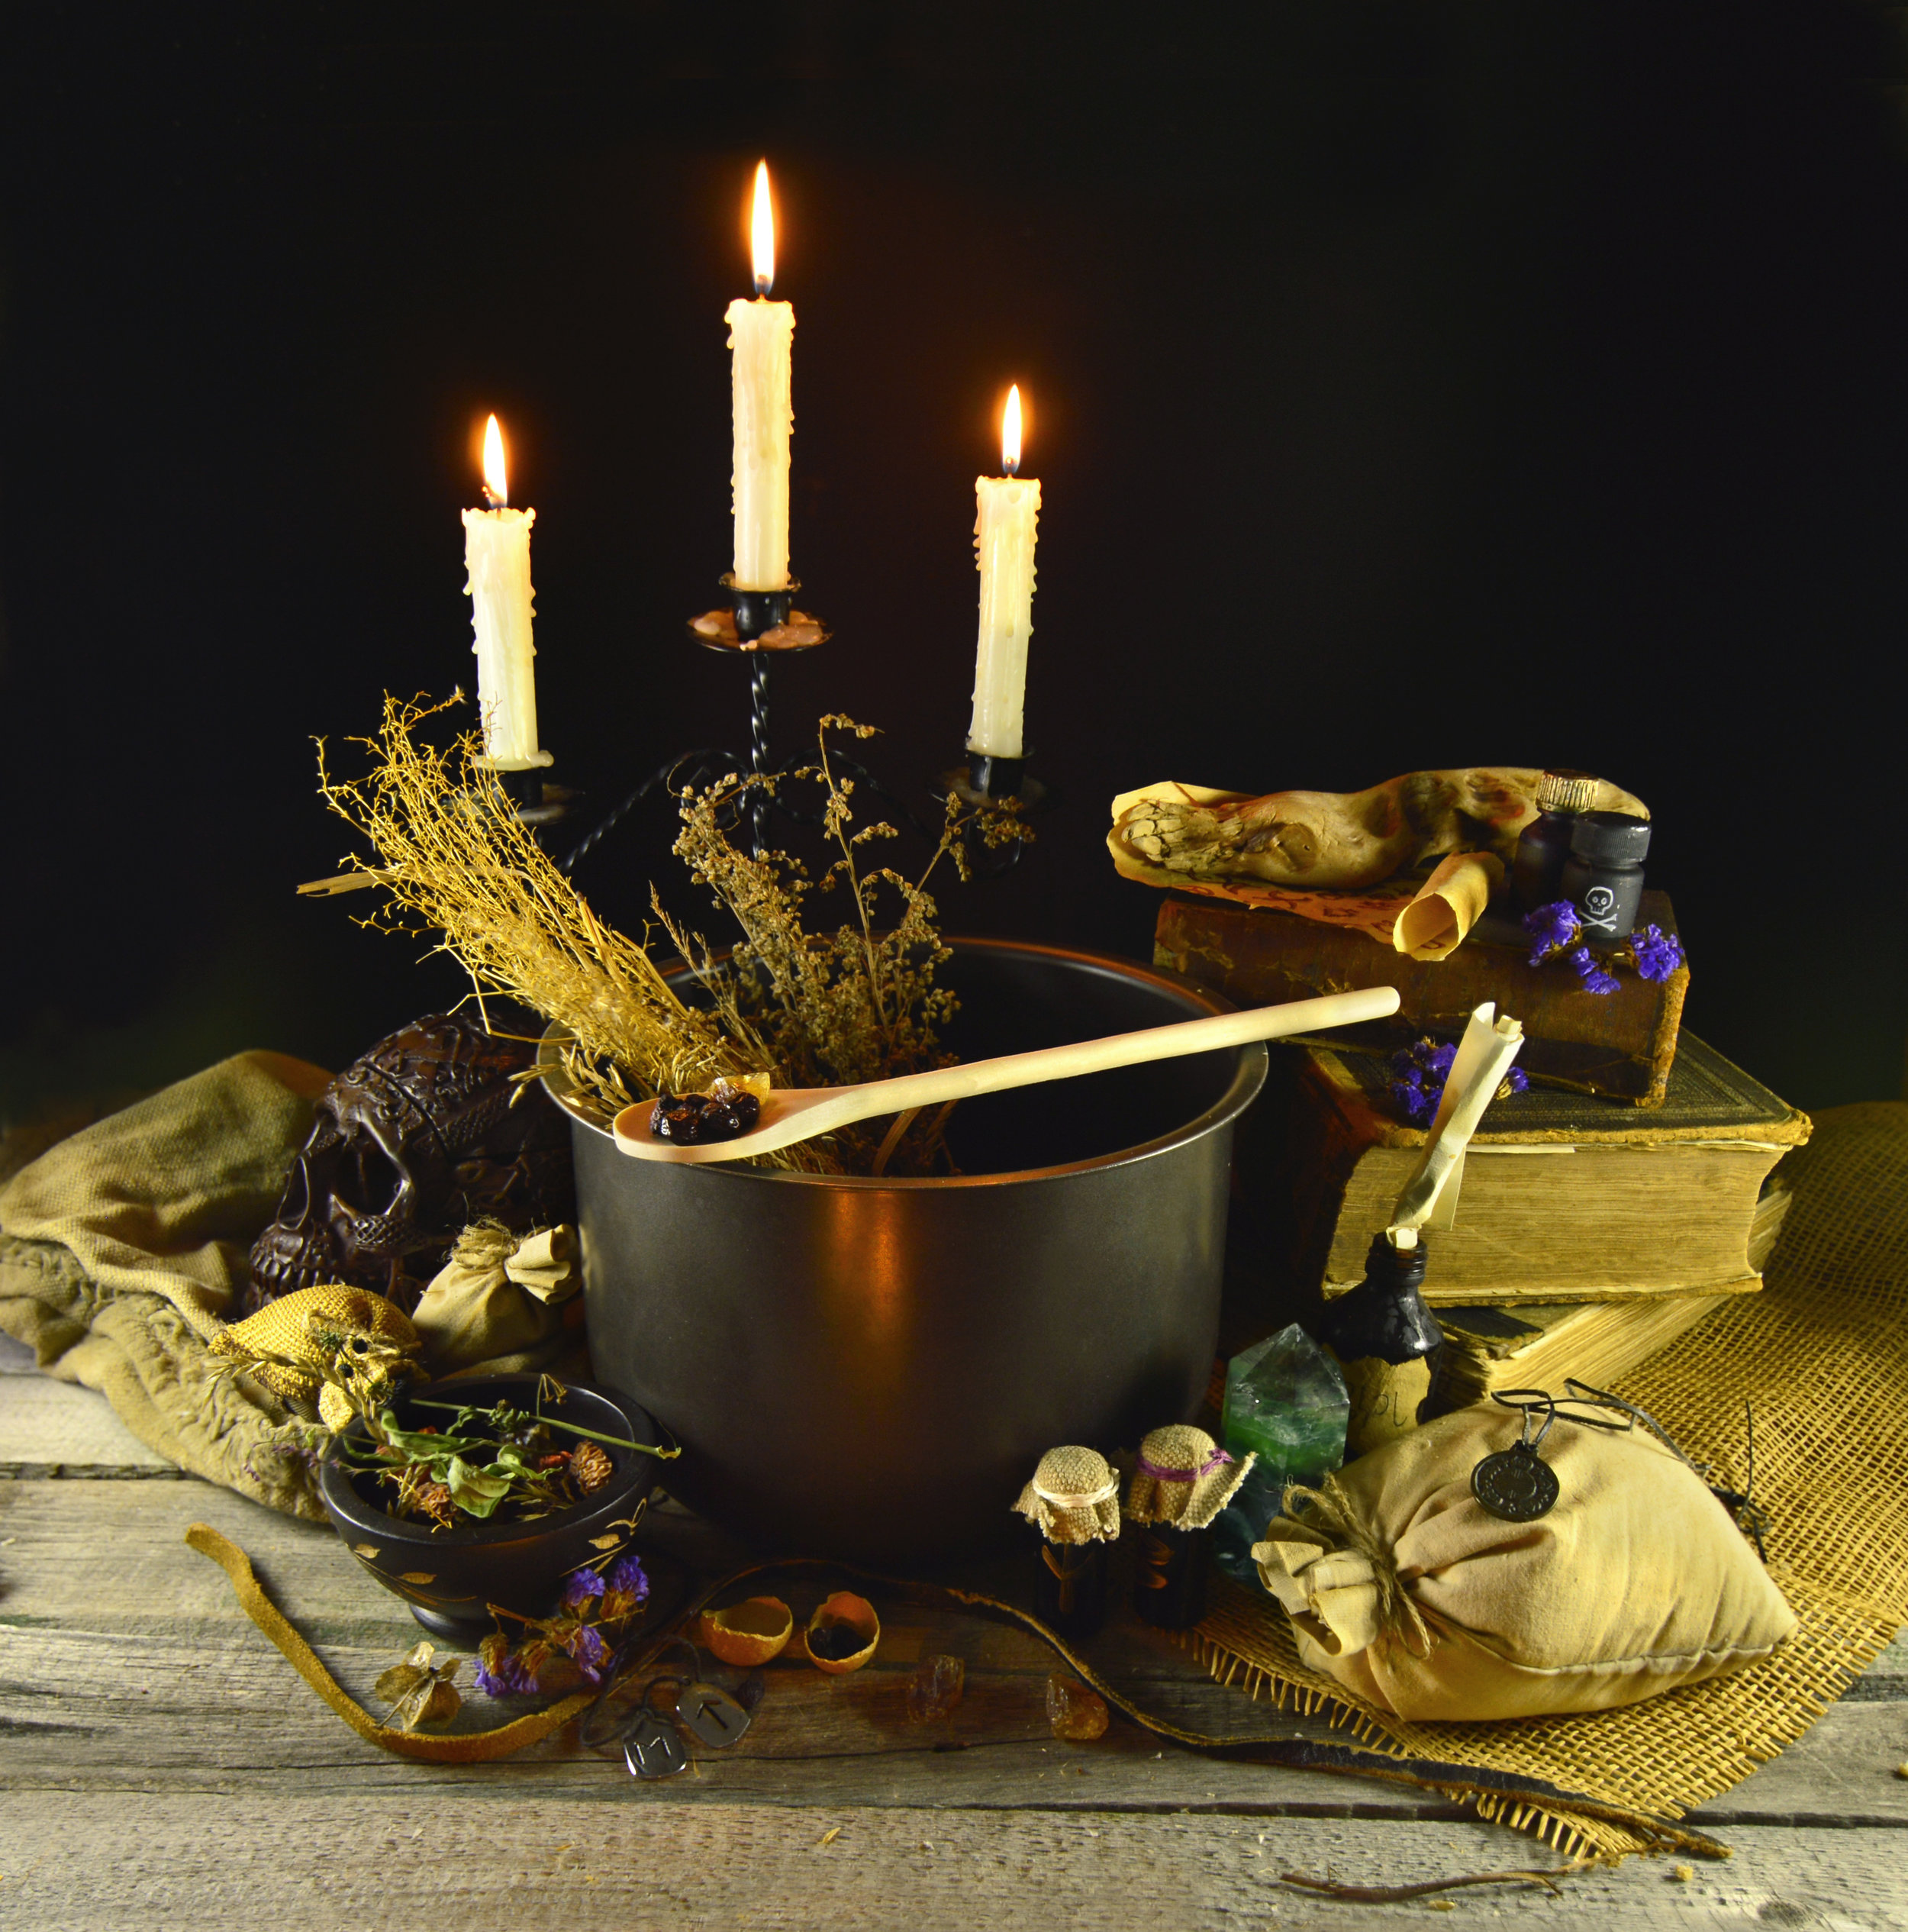 Witches Herbal Kitchen - Let dig in the dirt creating a magical garden that reaps herbal bases for mystical aromatherapy potions.